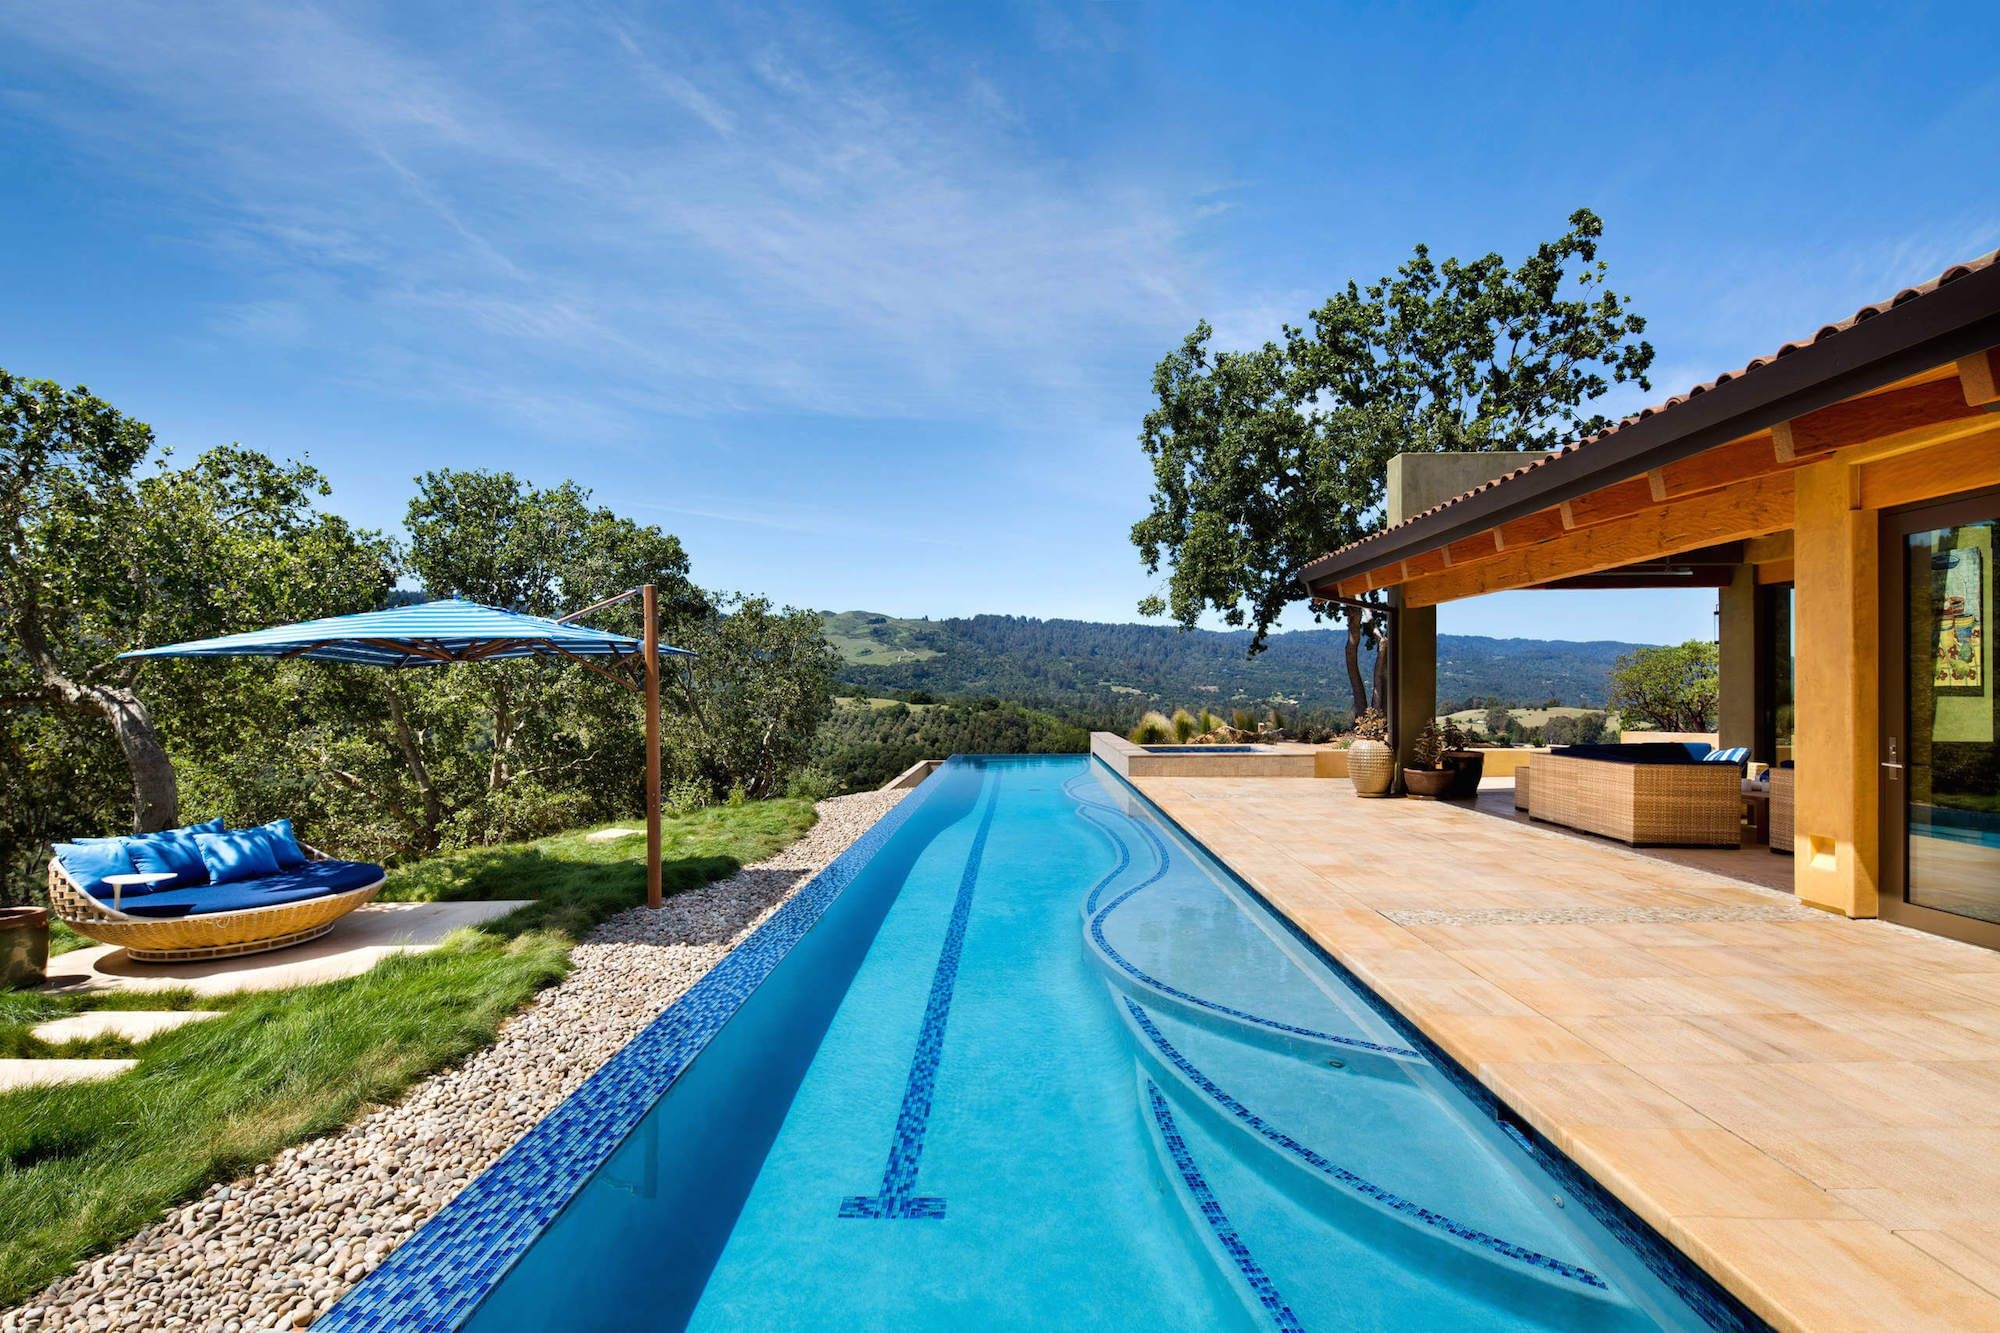 Spectacular-palo-alto-hills-stoecker-northway-architects-09